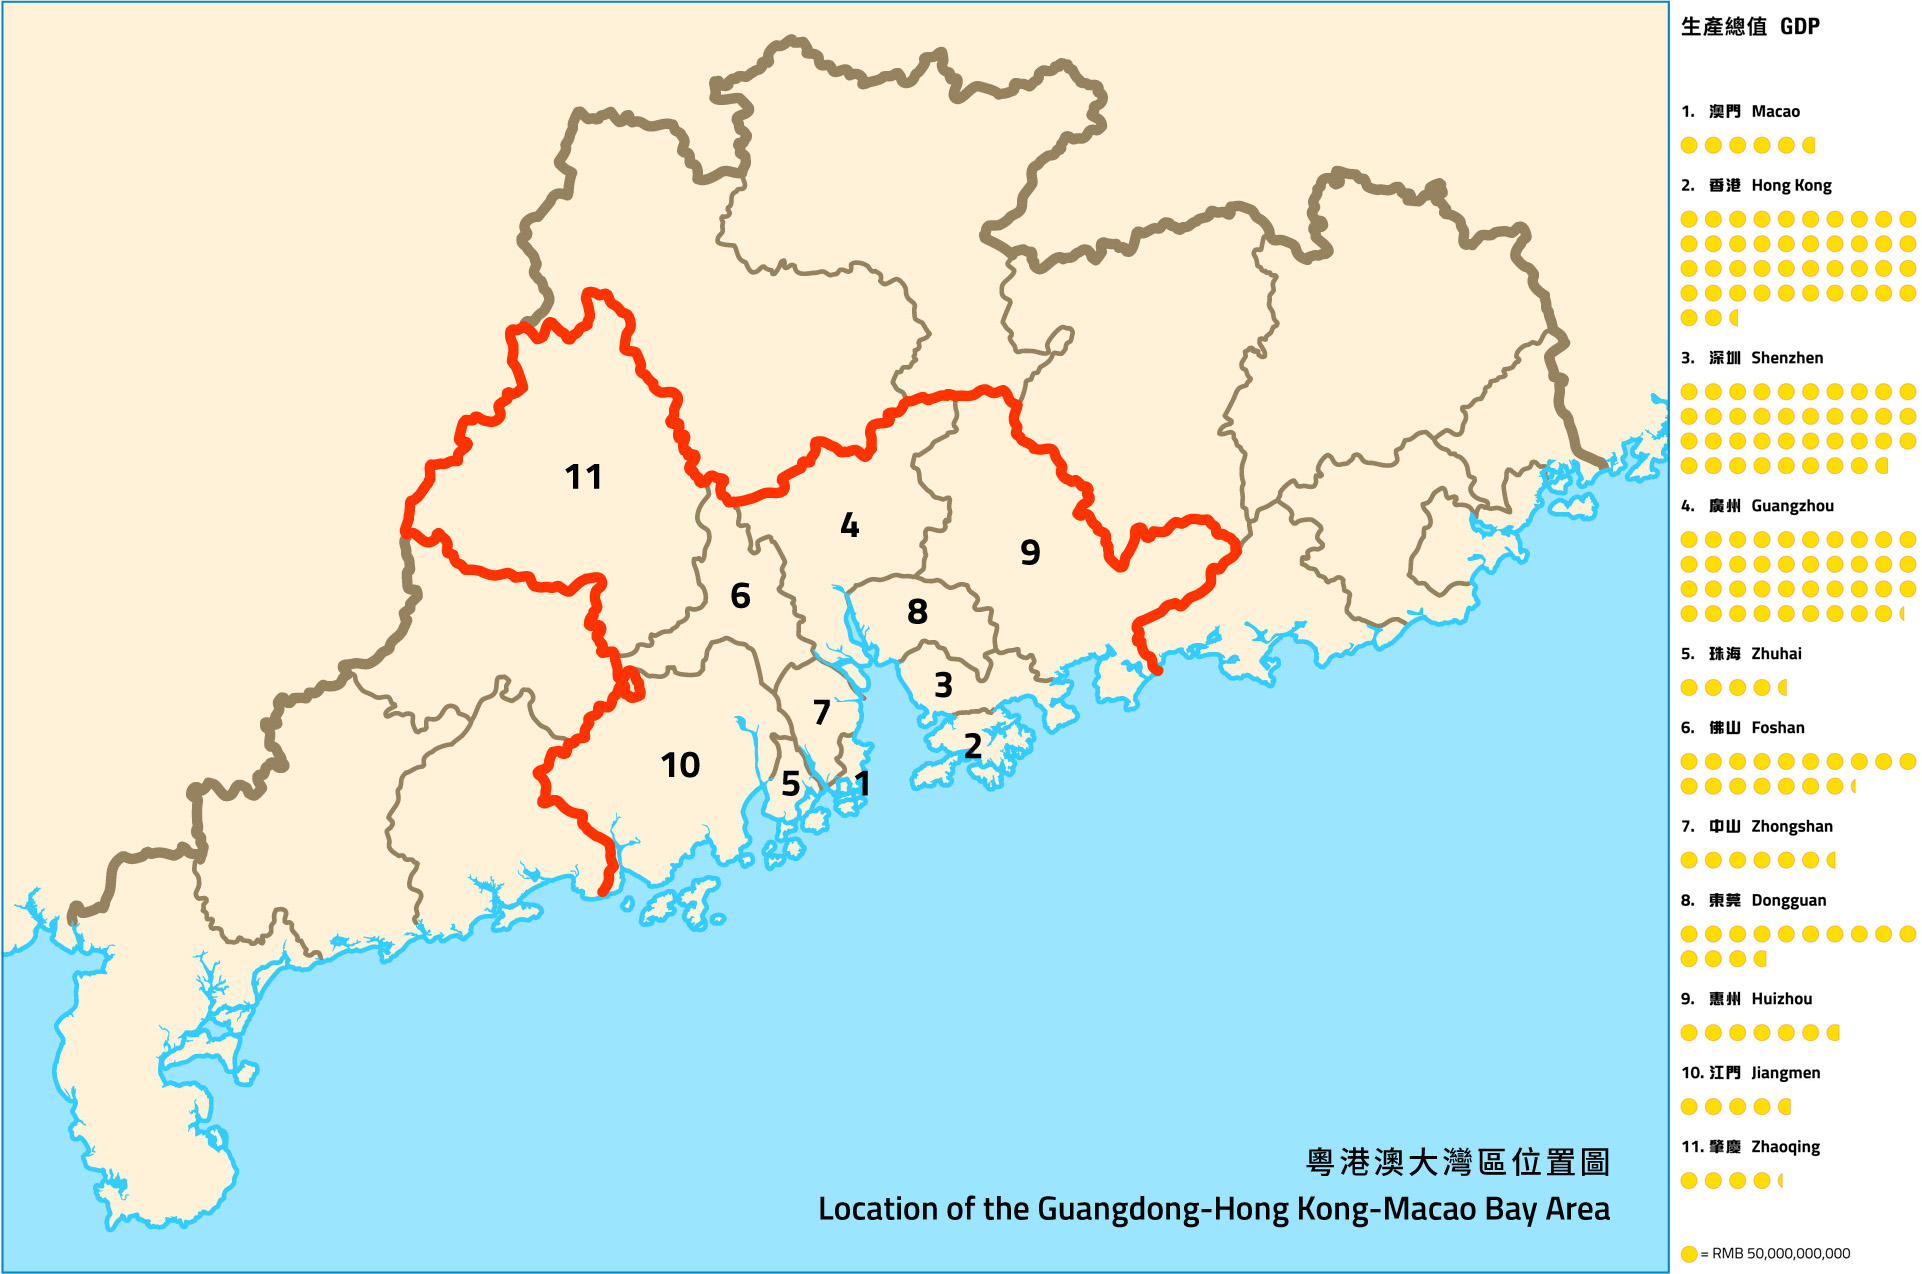 Guangdong hong kong macao bay area growth opportunities abound ipim sources statistical yearbook of guangdong hong kong census and statistics department macao statistics and census service gumiabroncs Images